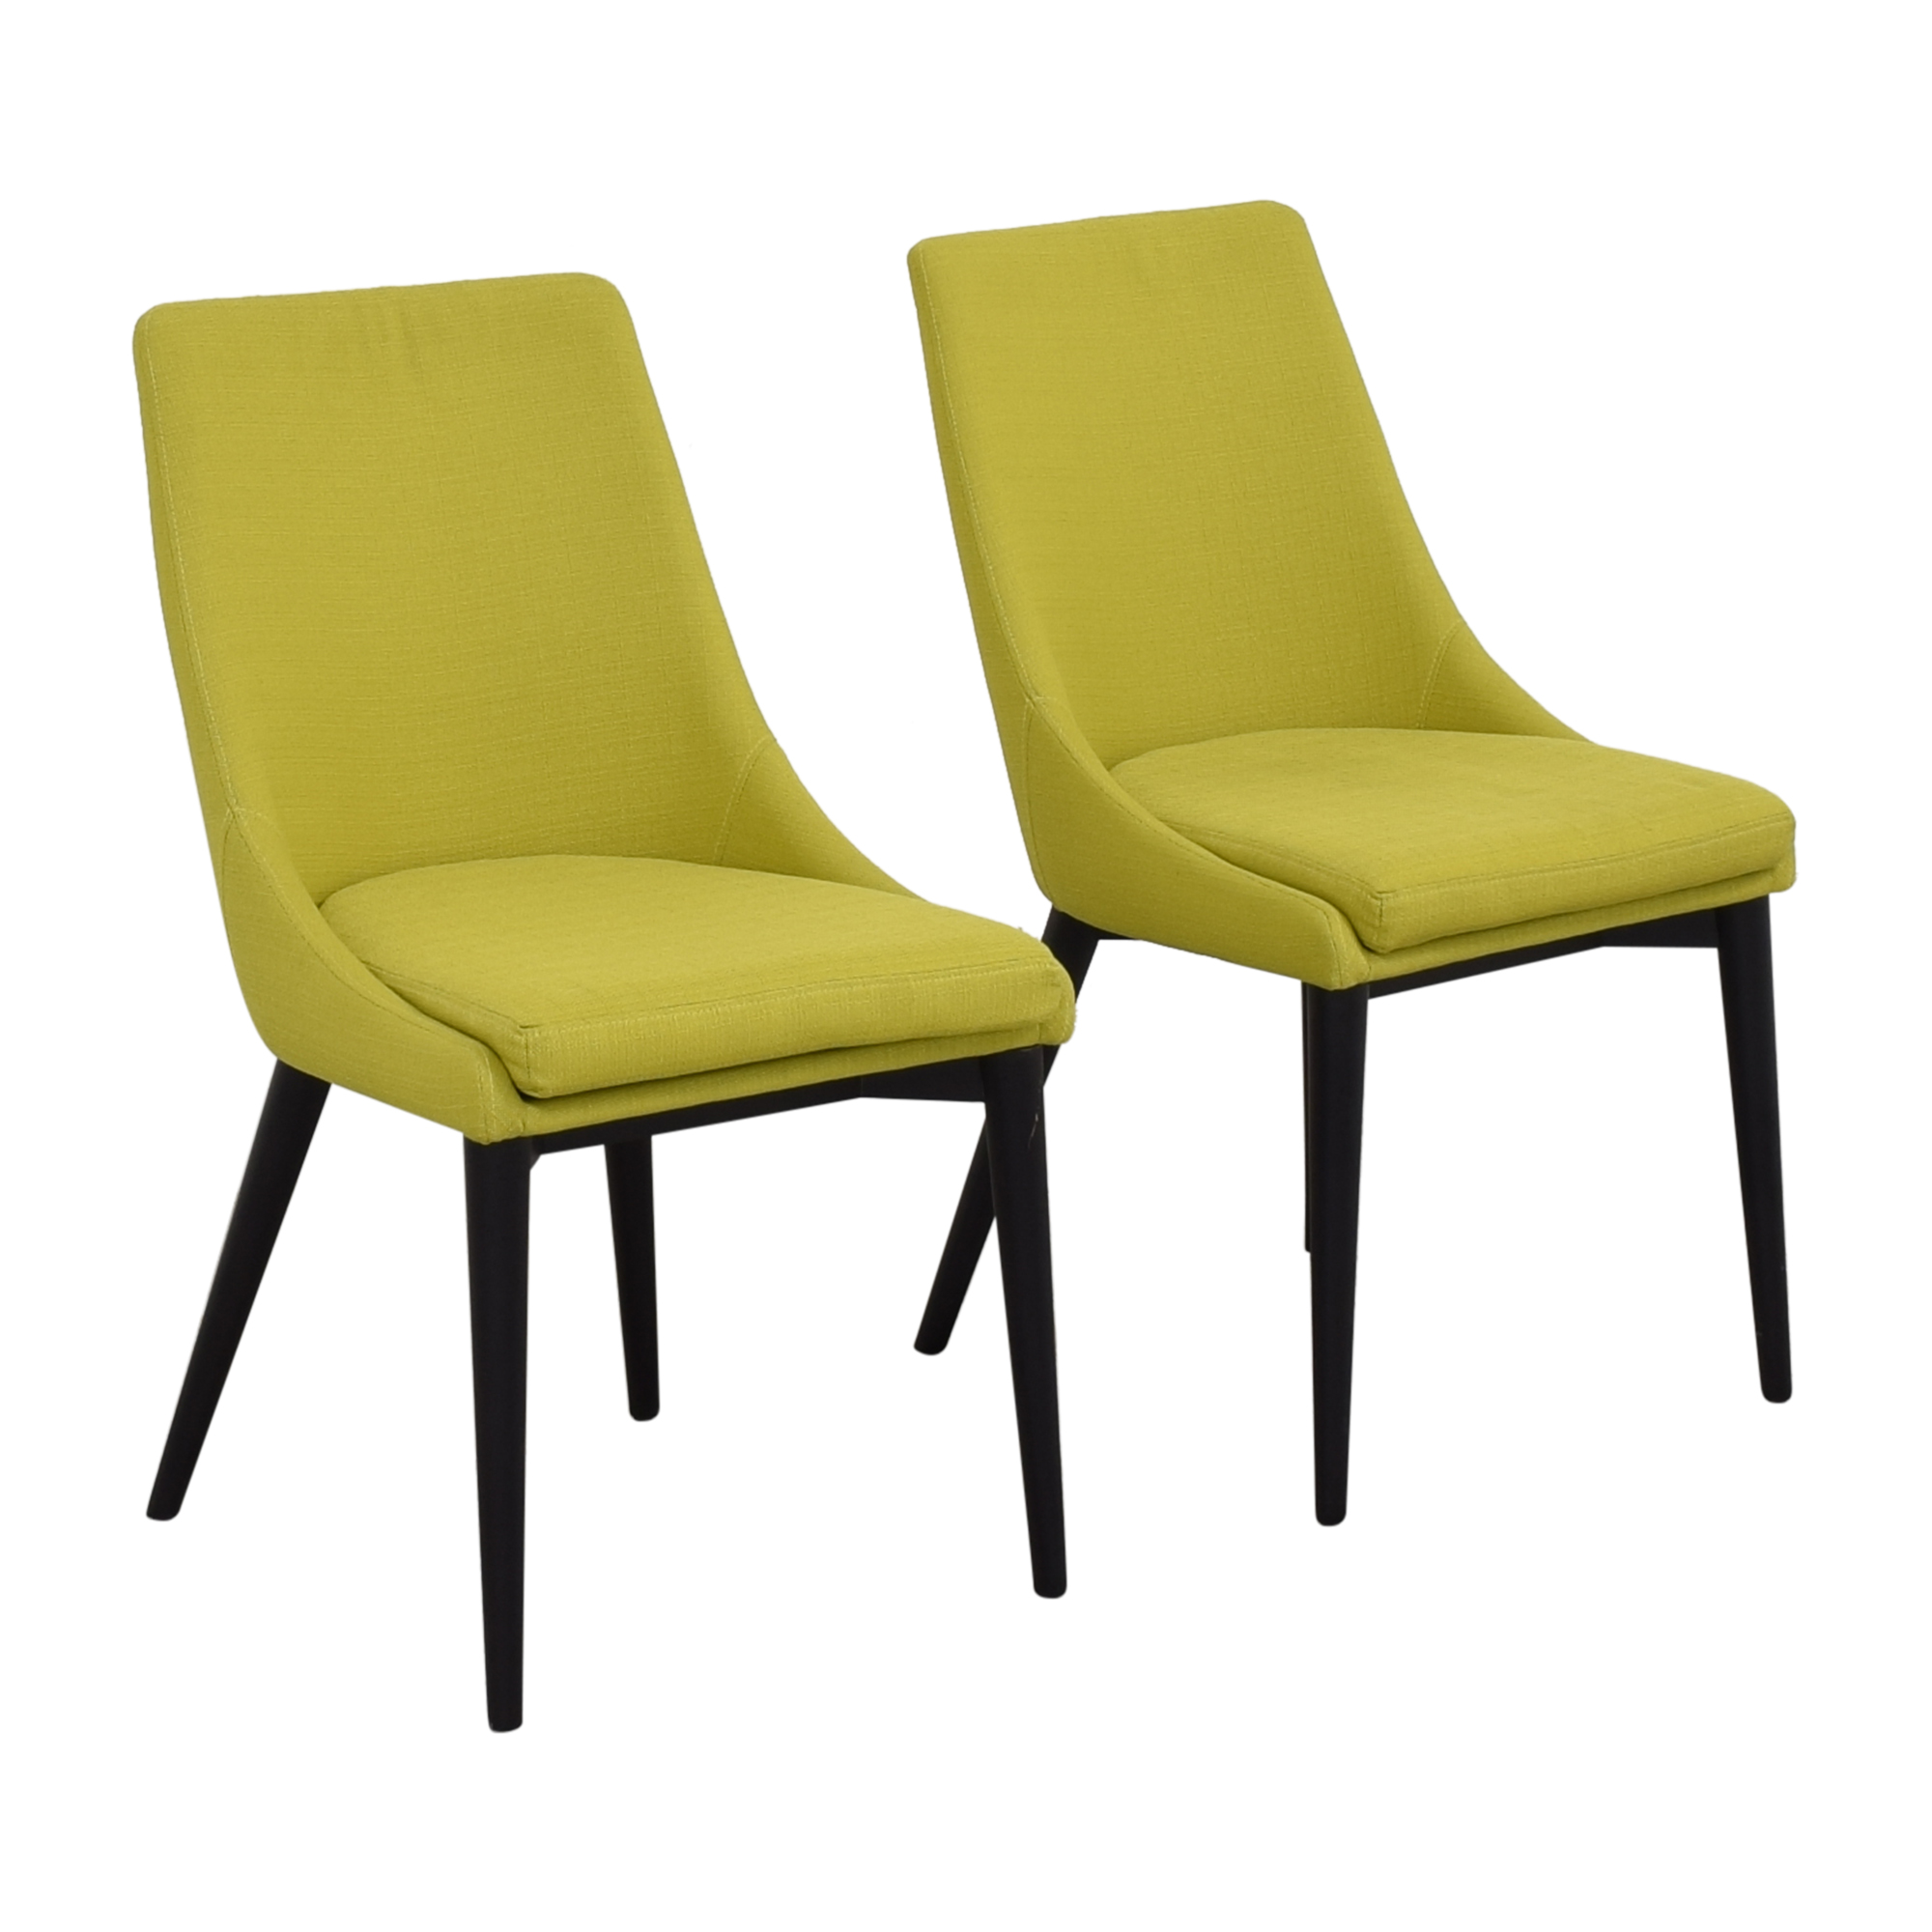 Modway Modway Viscount Dining Chairs light green